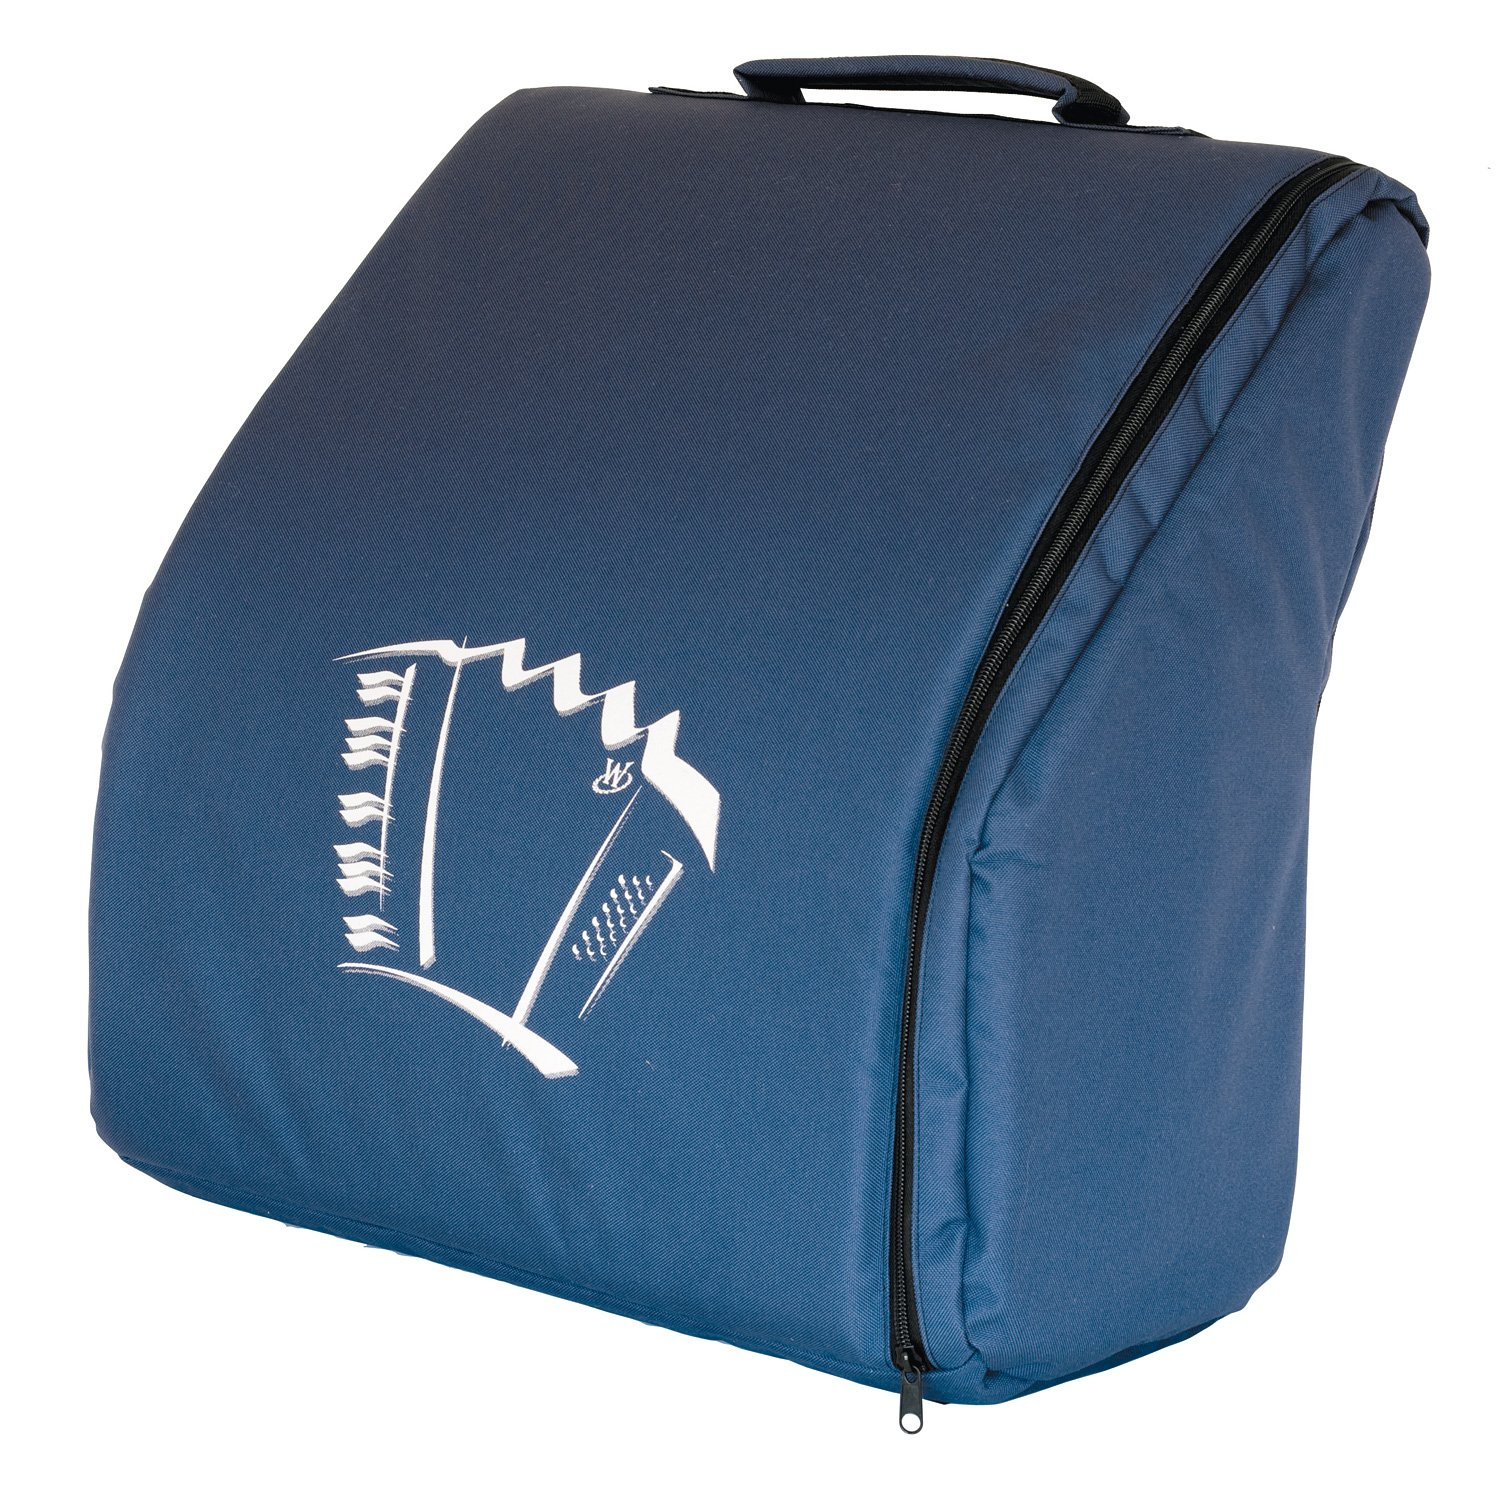 NEW Blue Weltmeister Gig Bag for Accordion 19 x 20.5 x 10